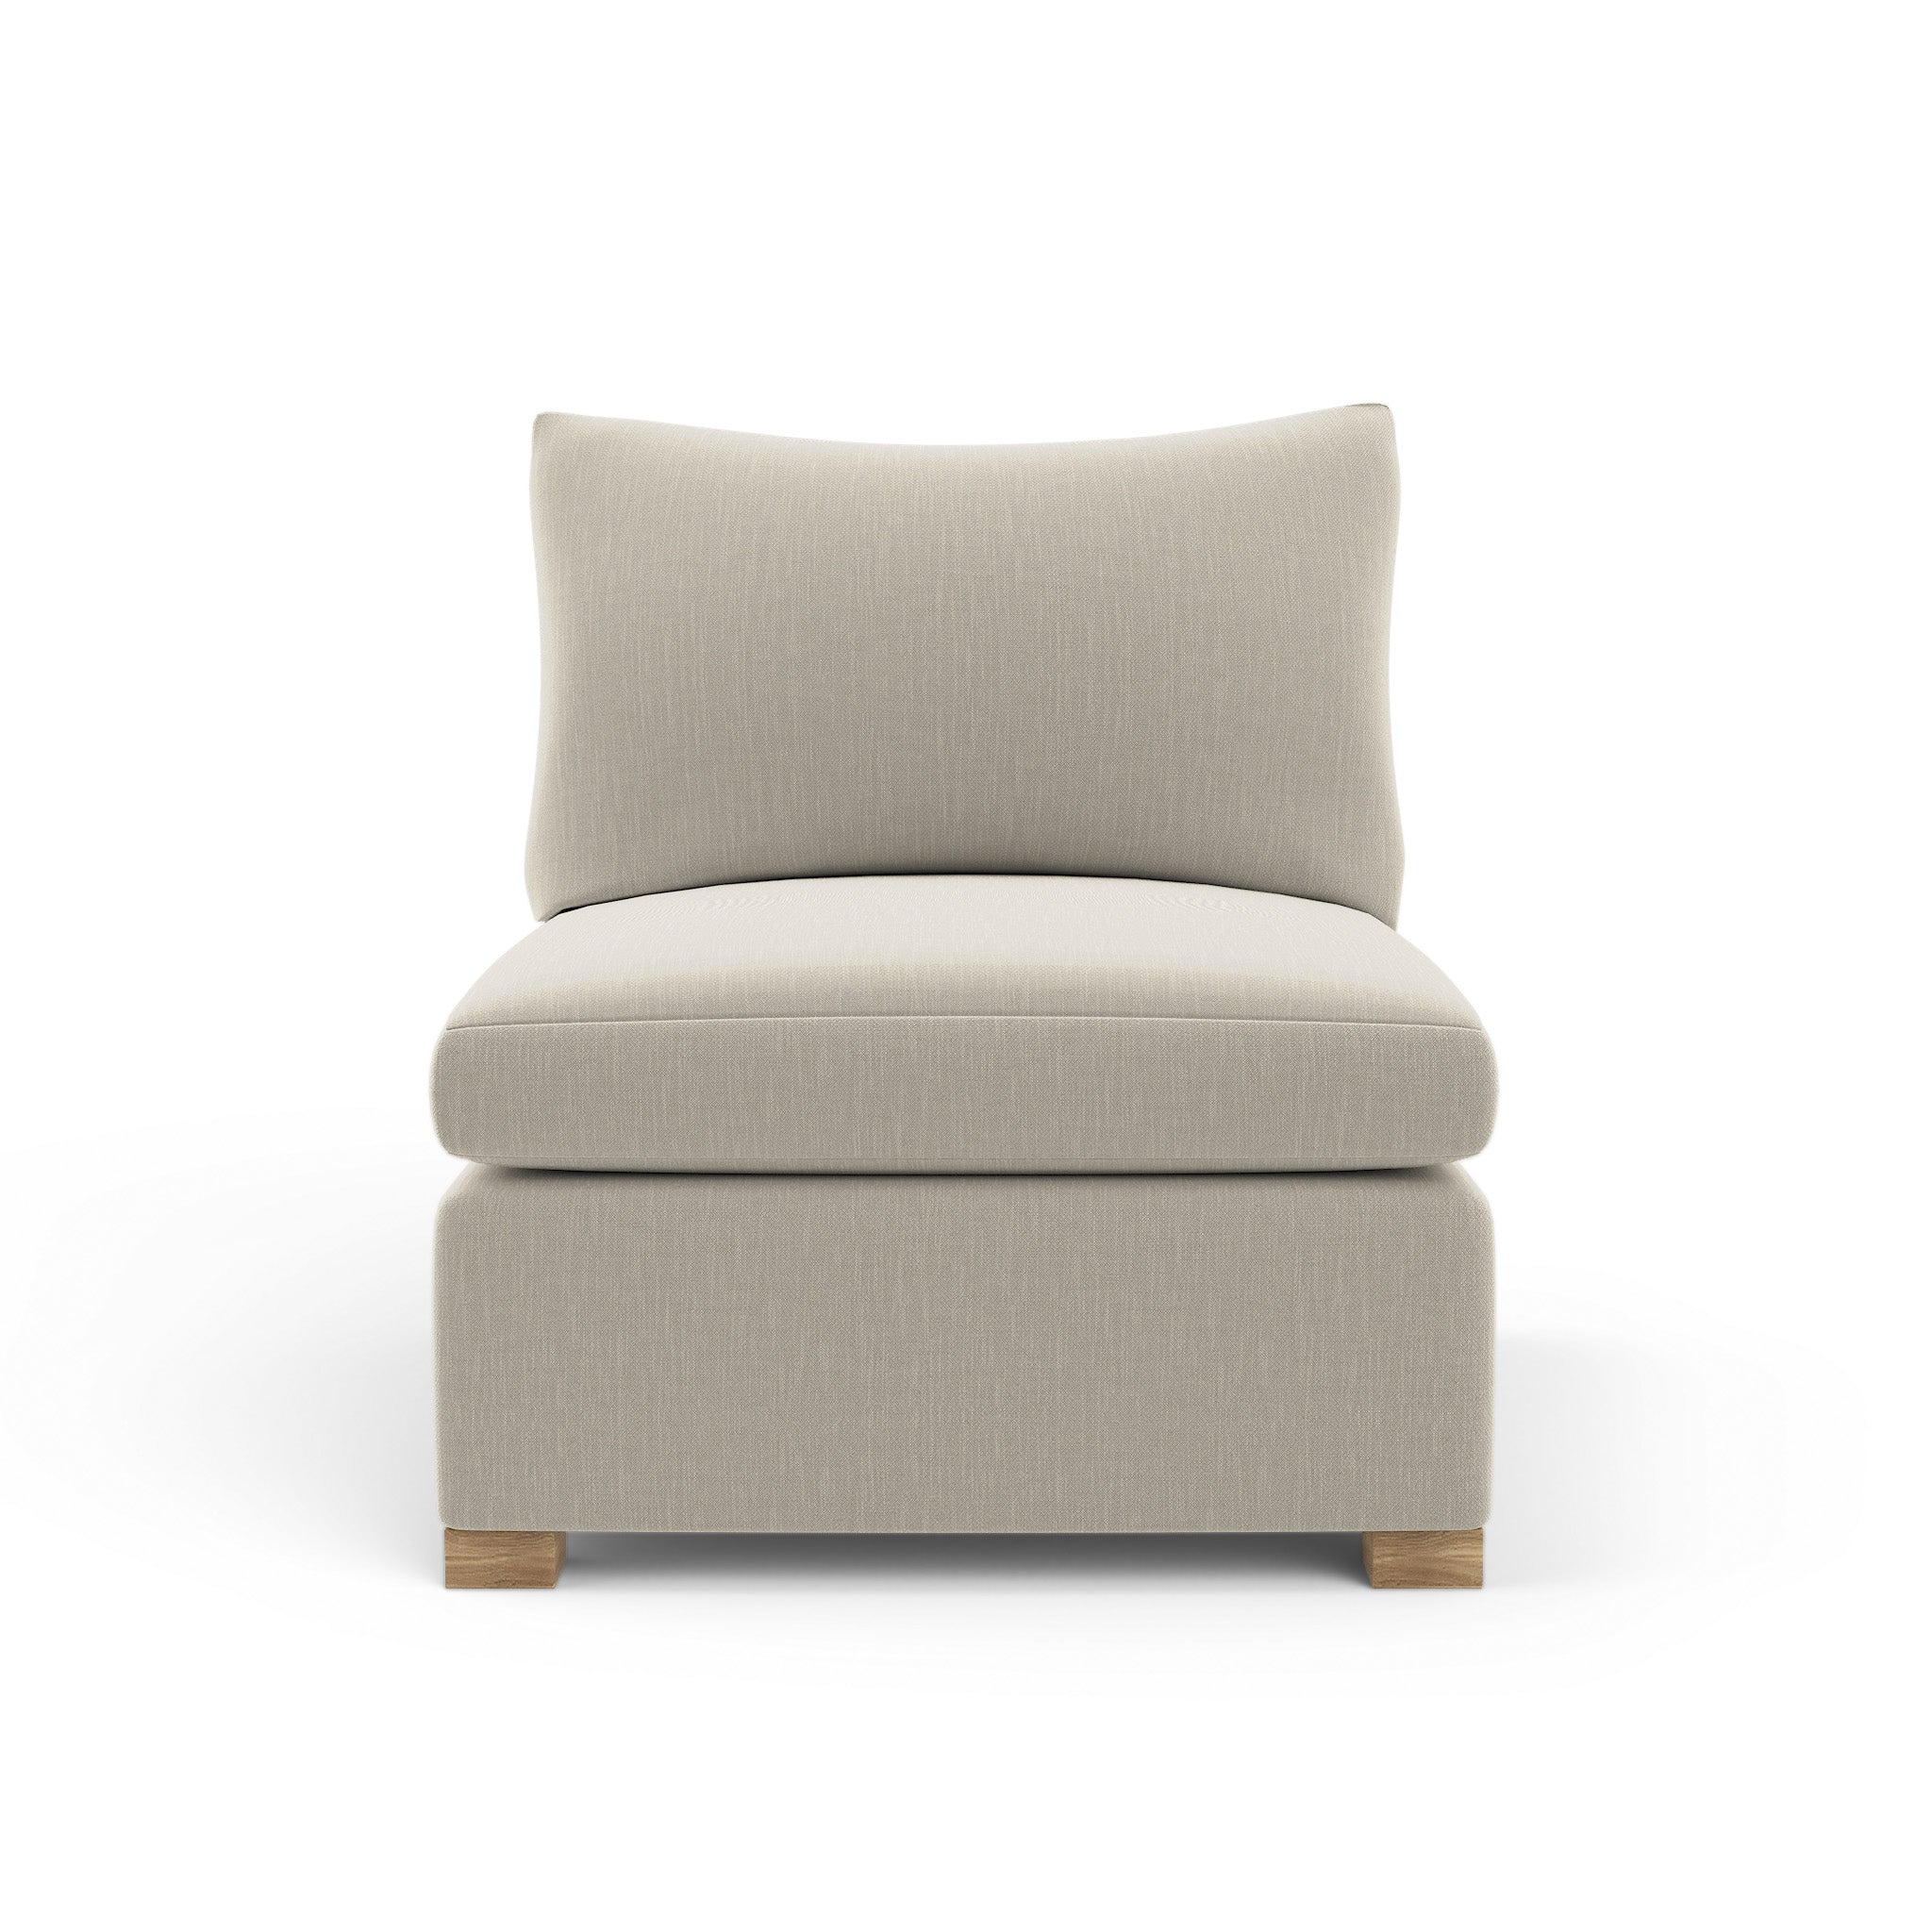 Evans Armless Chair - Oyster Box Weave Linen